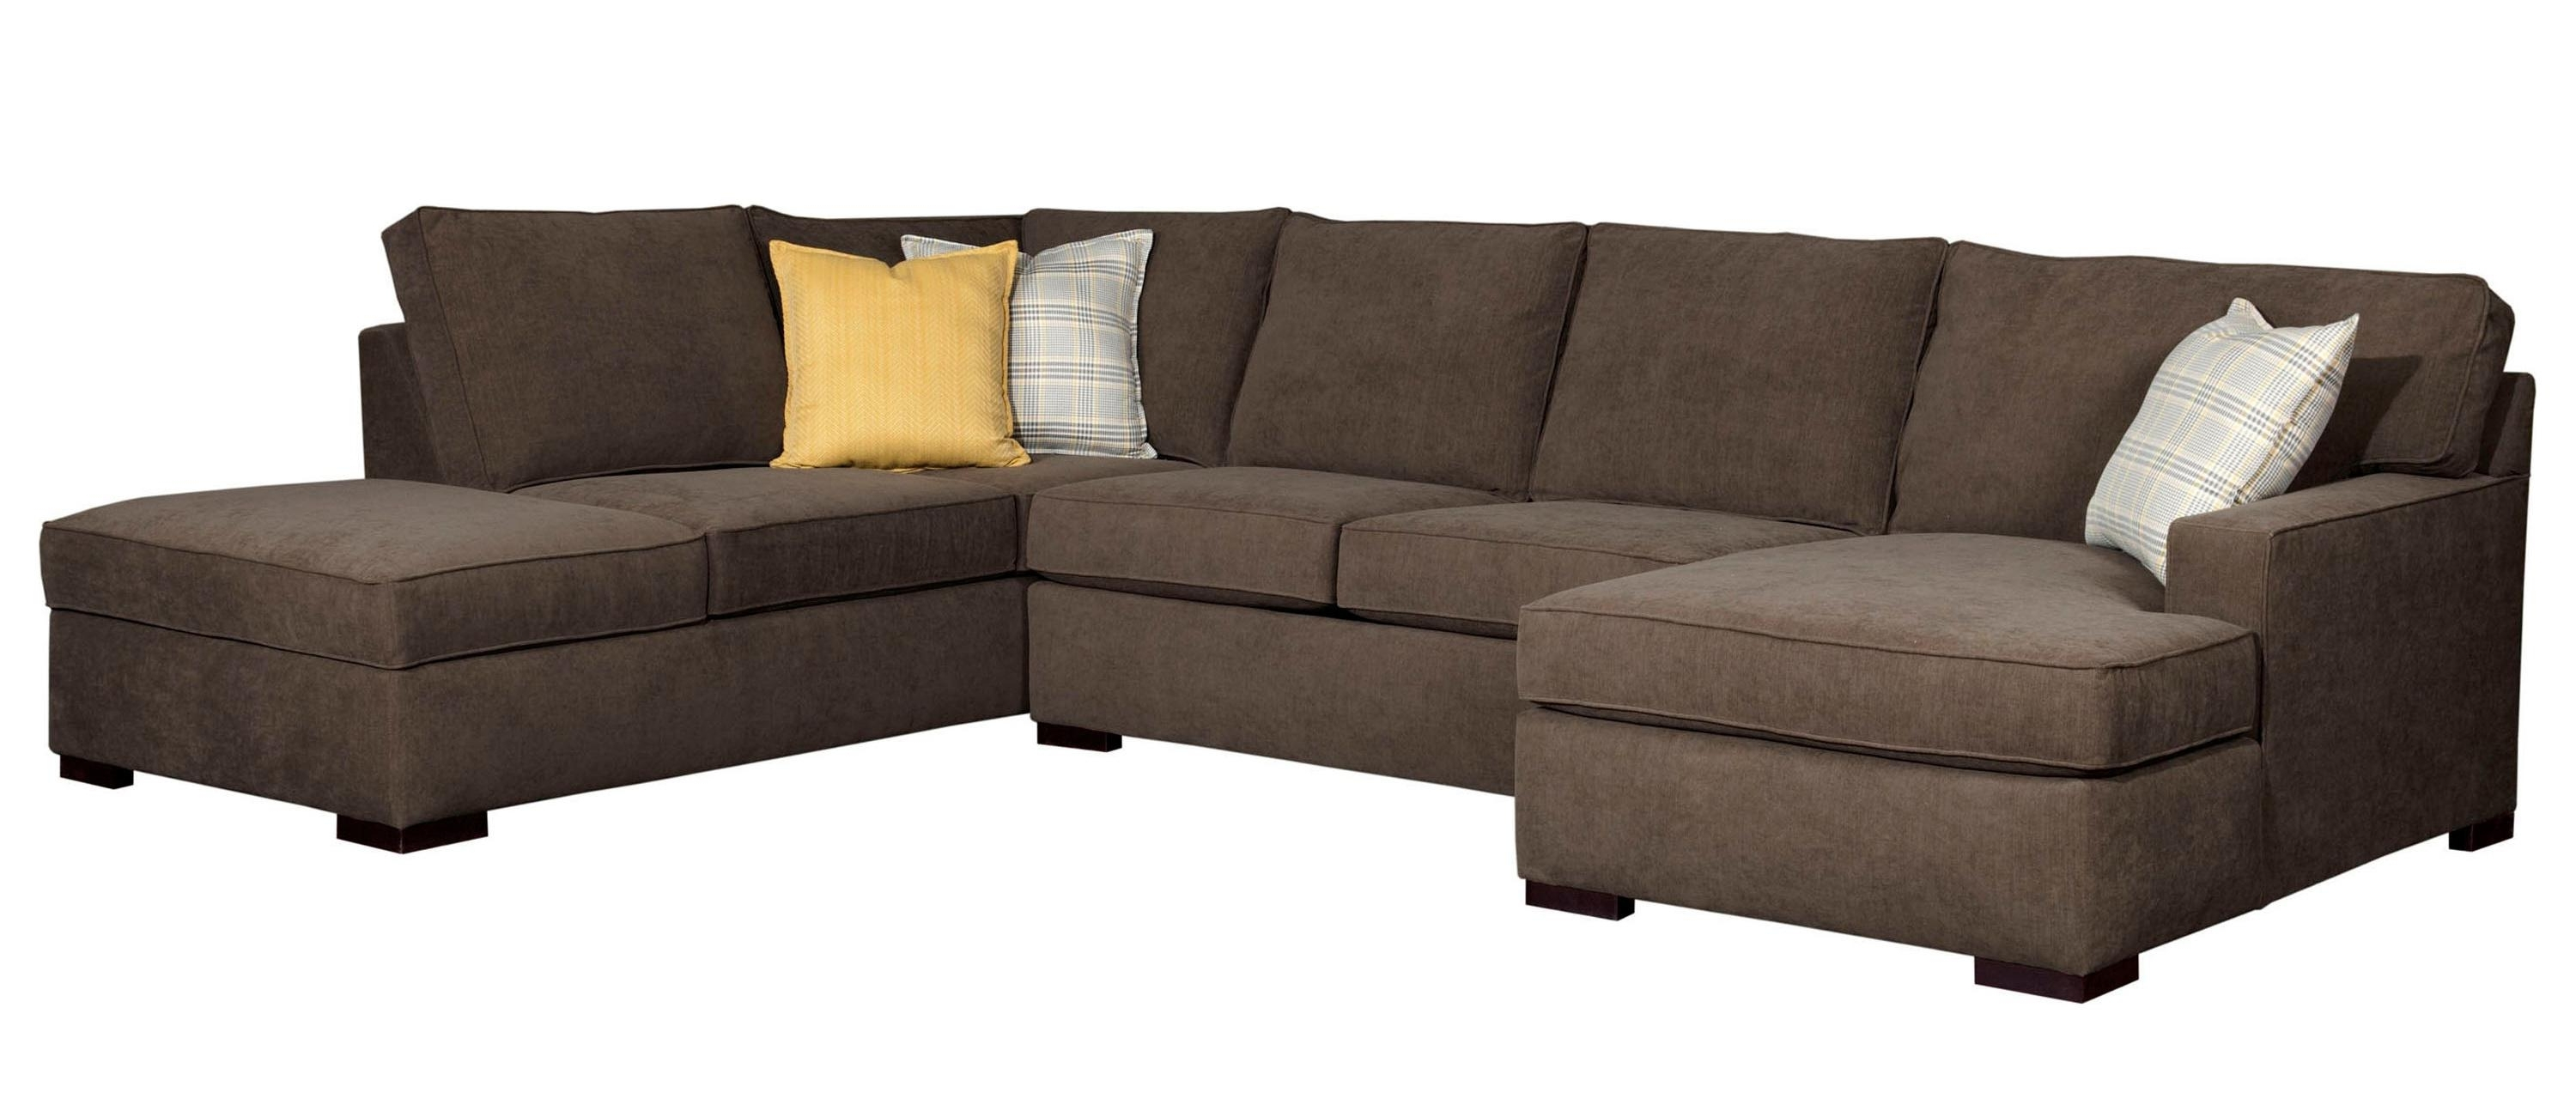 Fashionable Broyhill Furniture Raphael Contemporary Sectional Sofa With Laf Regarding Sam Levitz Sectional Sofas (View 2 of 15)